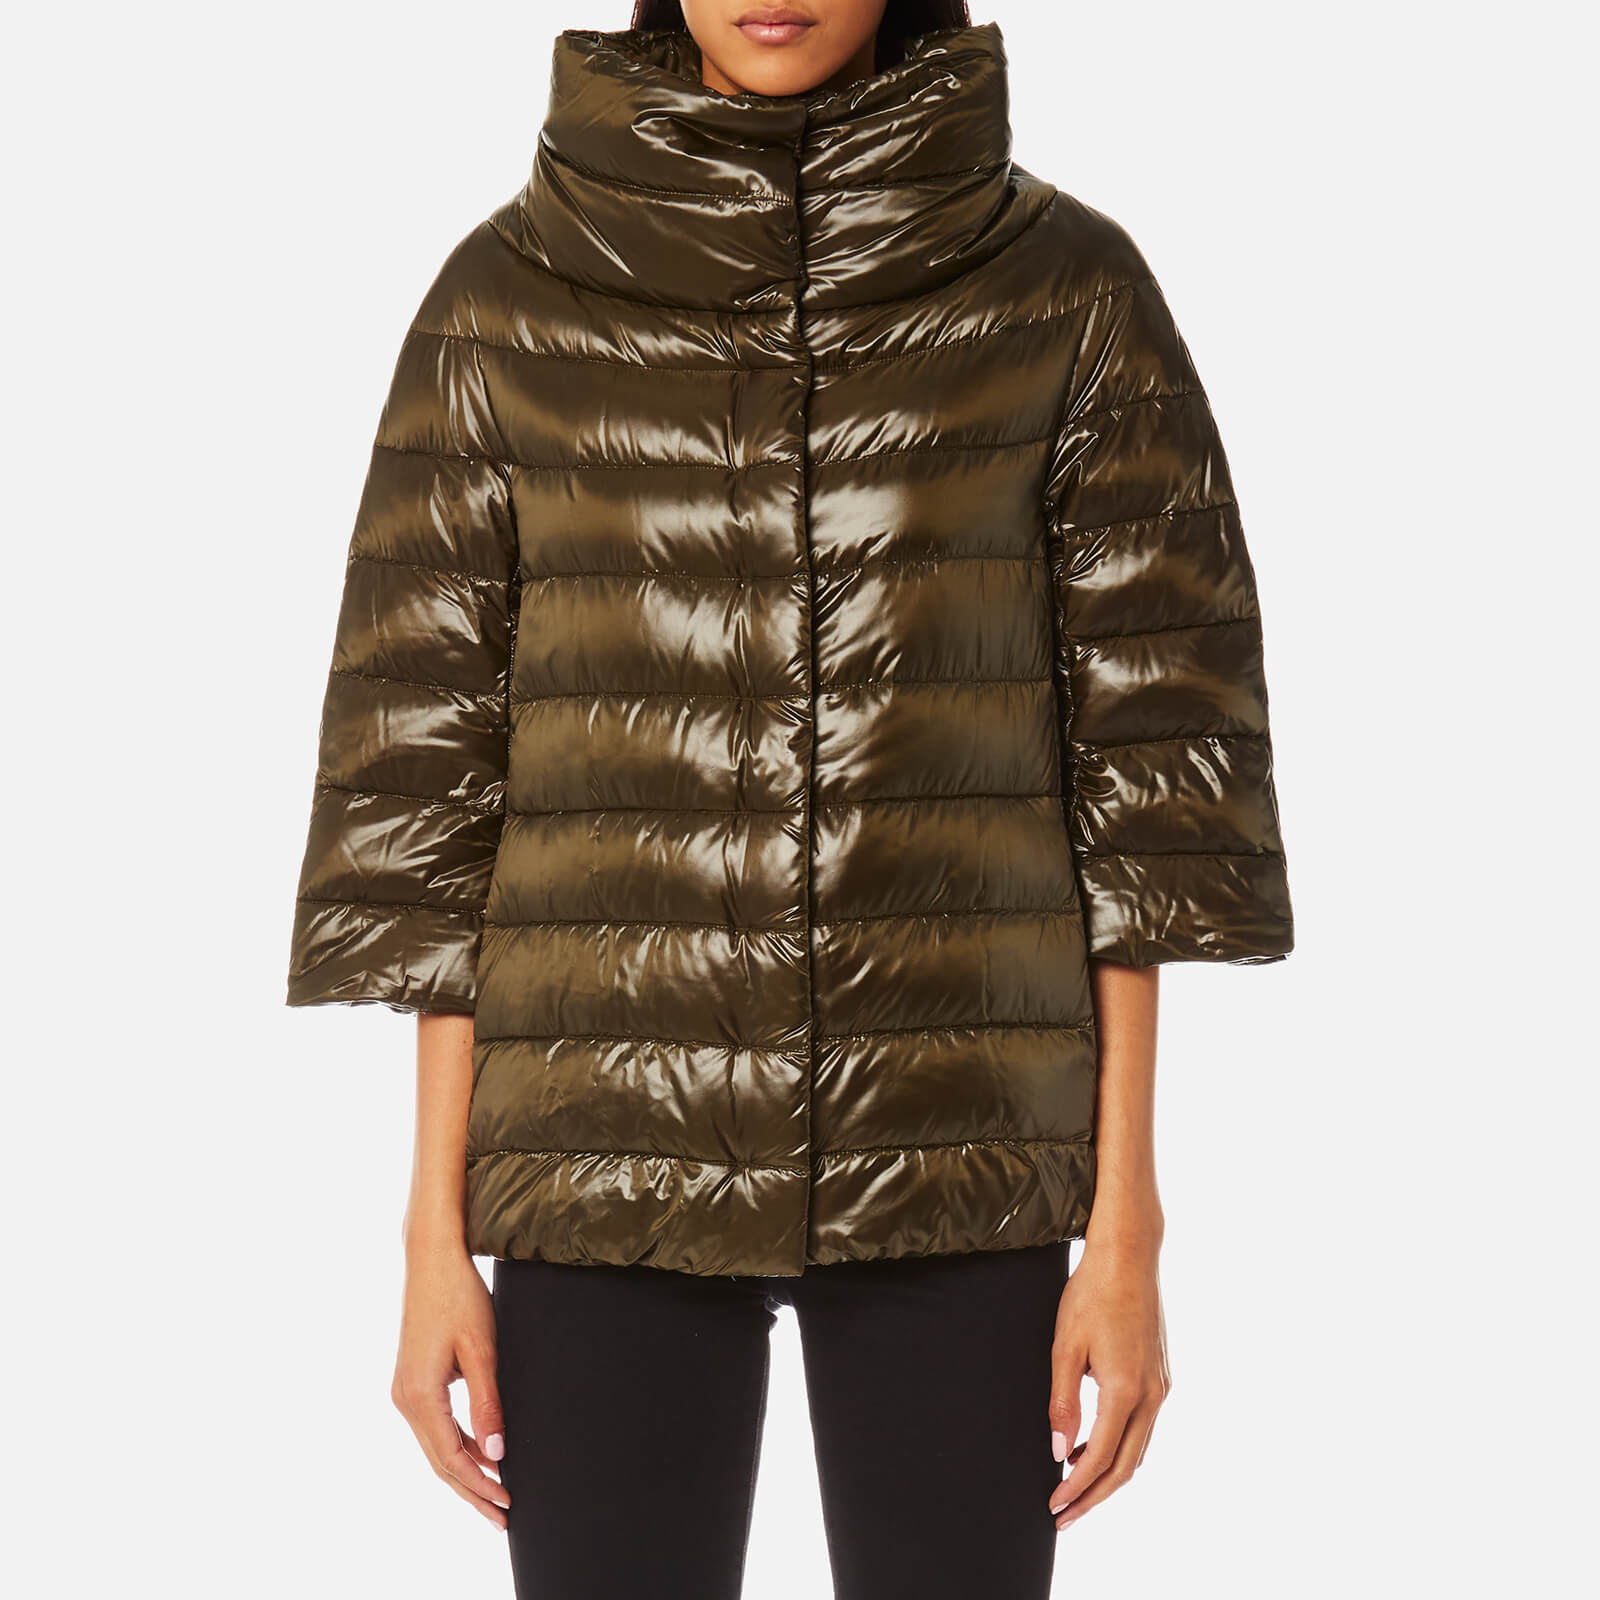 3422cea4a Herno Women's Woven Down Jacket - Verde Oliva